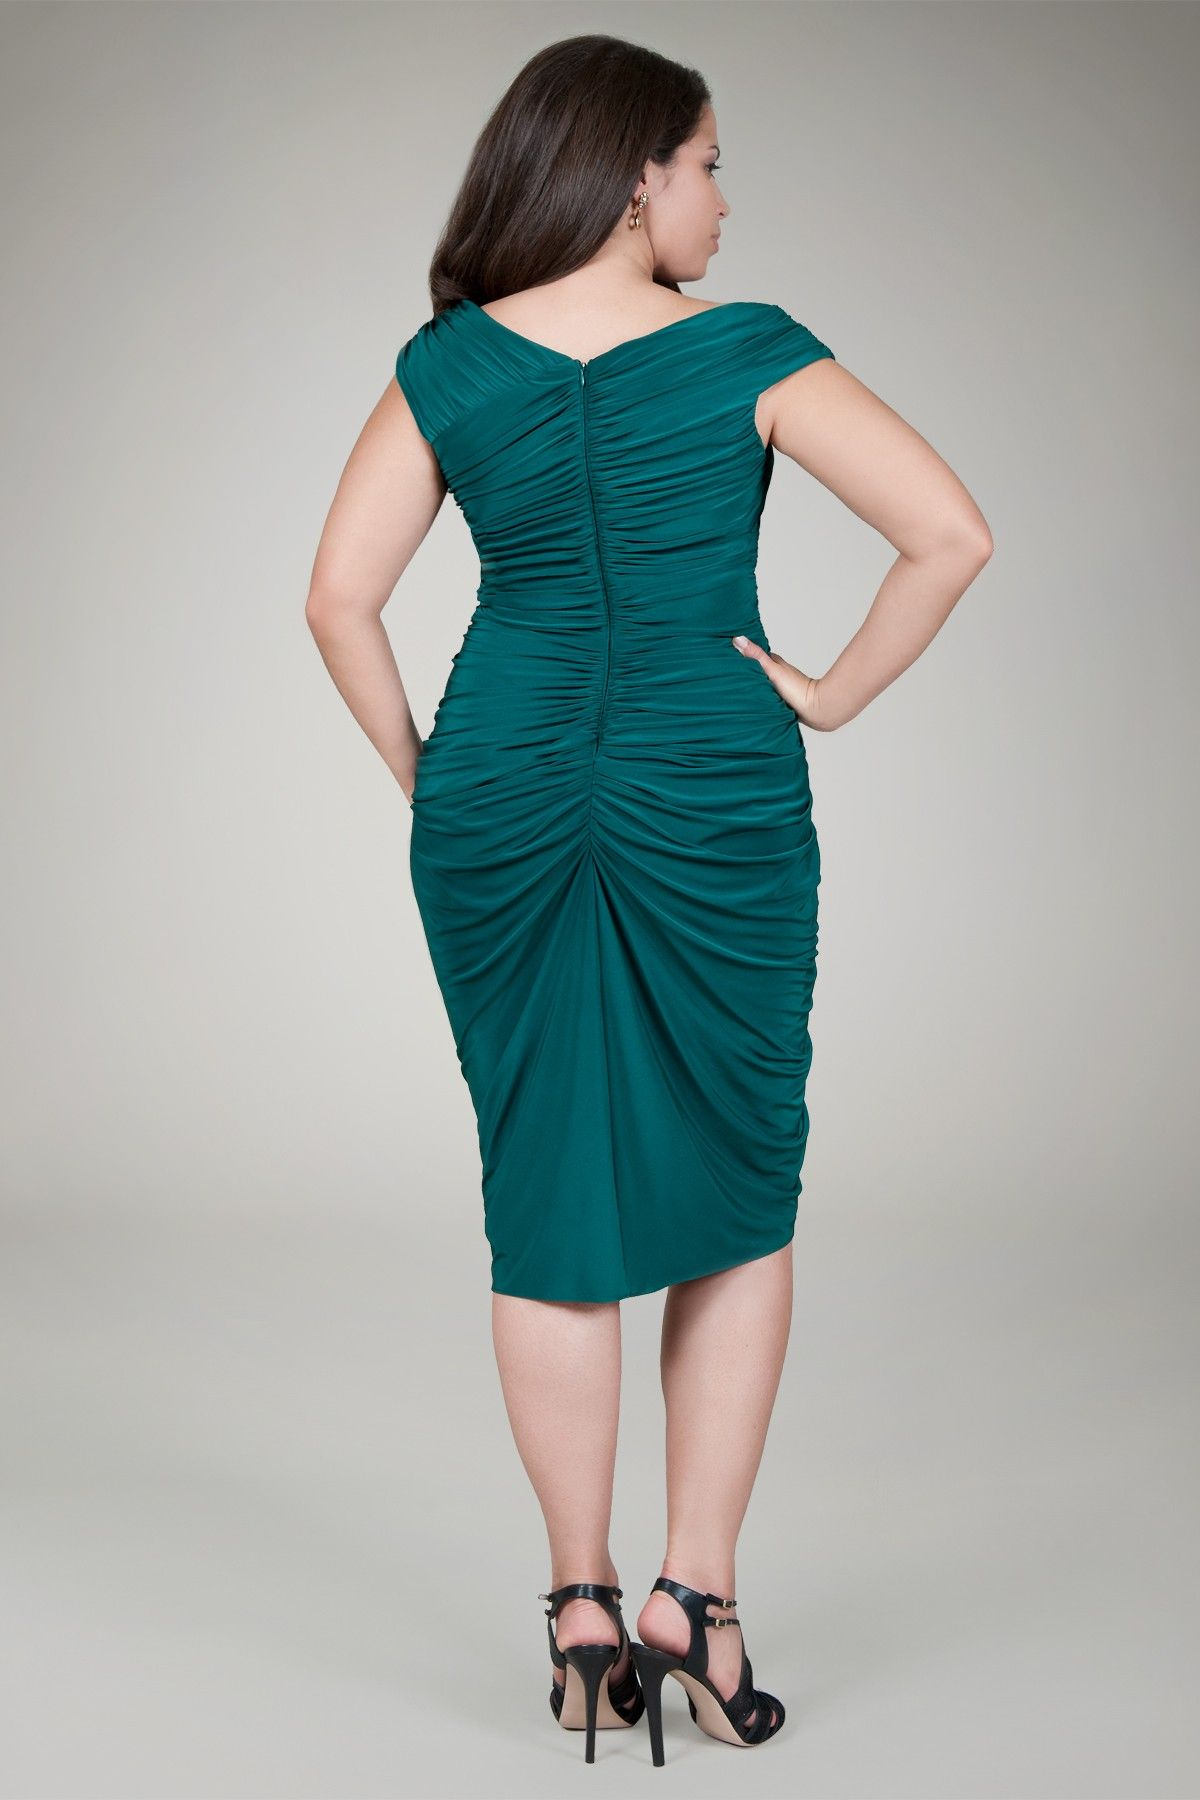 Draped jersey cocktail dress in pine back plus size